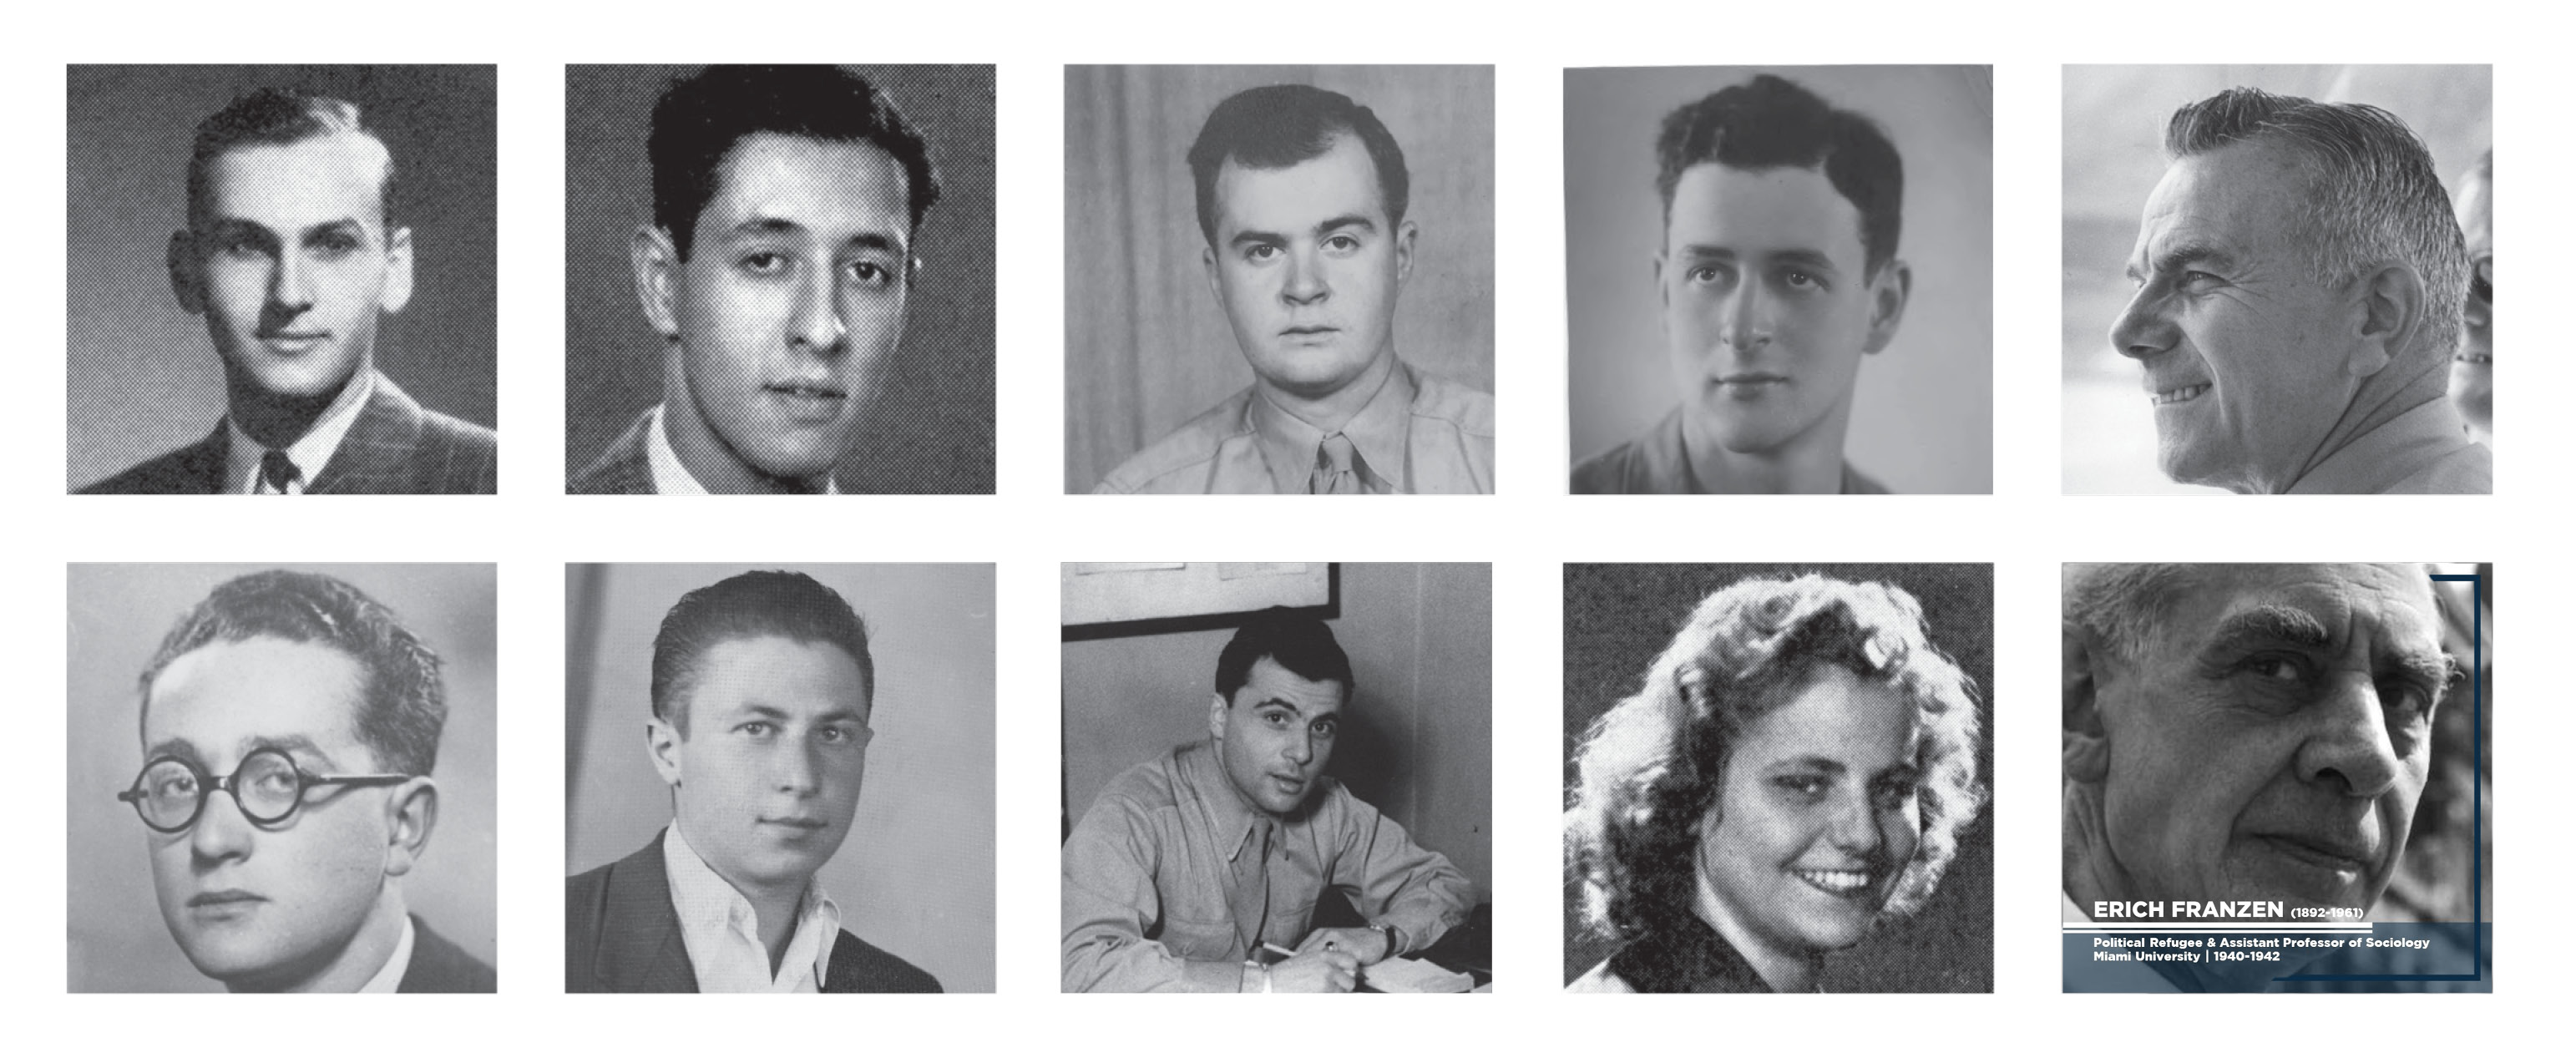 Nine black and white portraits of the alumni and faculty featured in the exhibition Bearing Witness. Erich Franzen's image is outlined in blue with the text - Erich Franzen. 1892 - 1961. Political refugee and assistant professor of sociology. Miami University. 1940 - 1942.